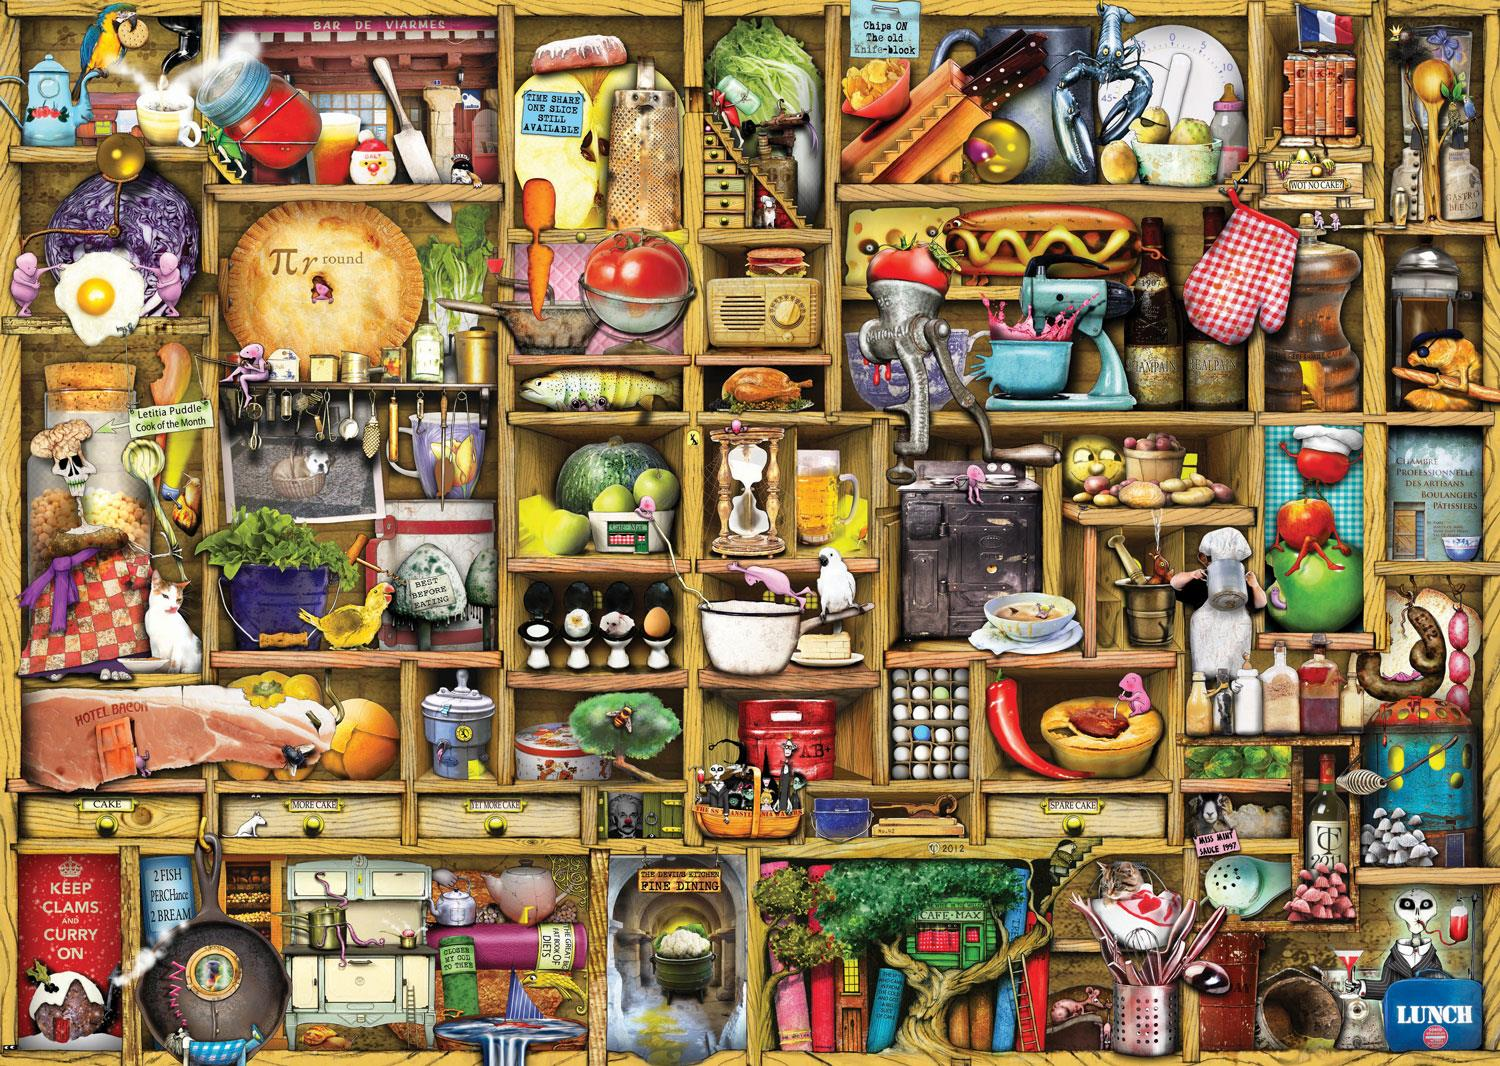 Ravensburger The Curious Cupboard No.1 - The Kitchen Cupboard Jigsaw Puzzle (1000 Pieces)